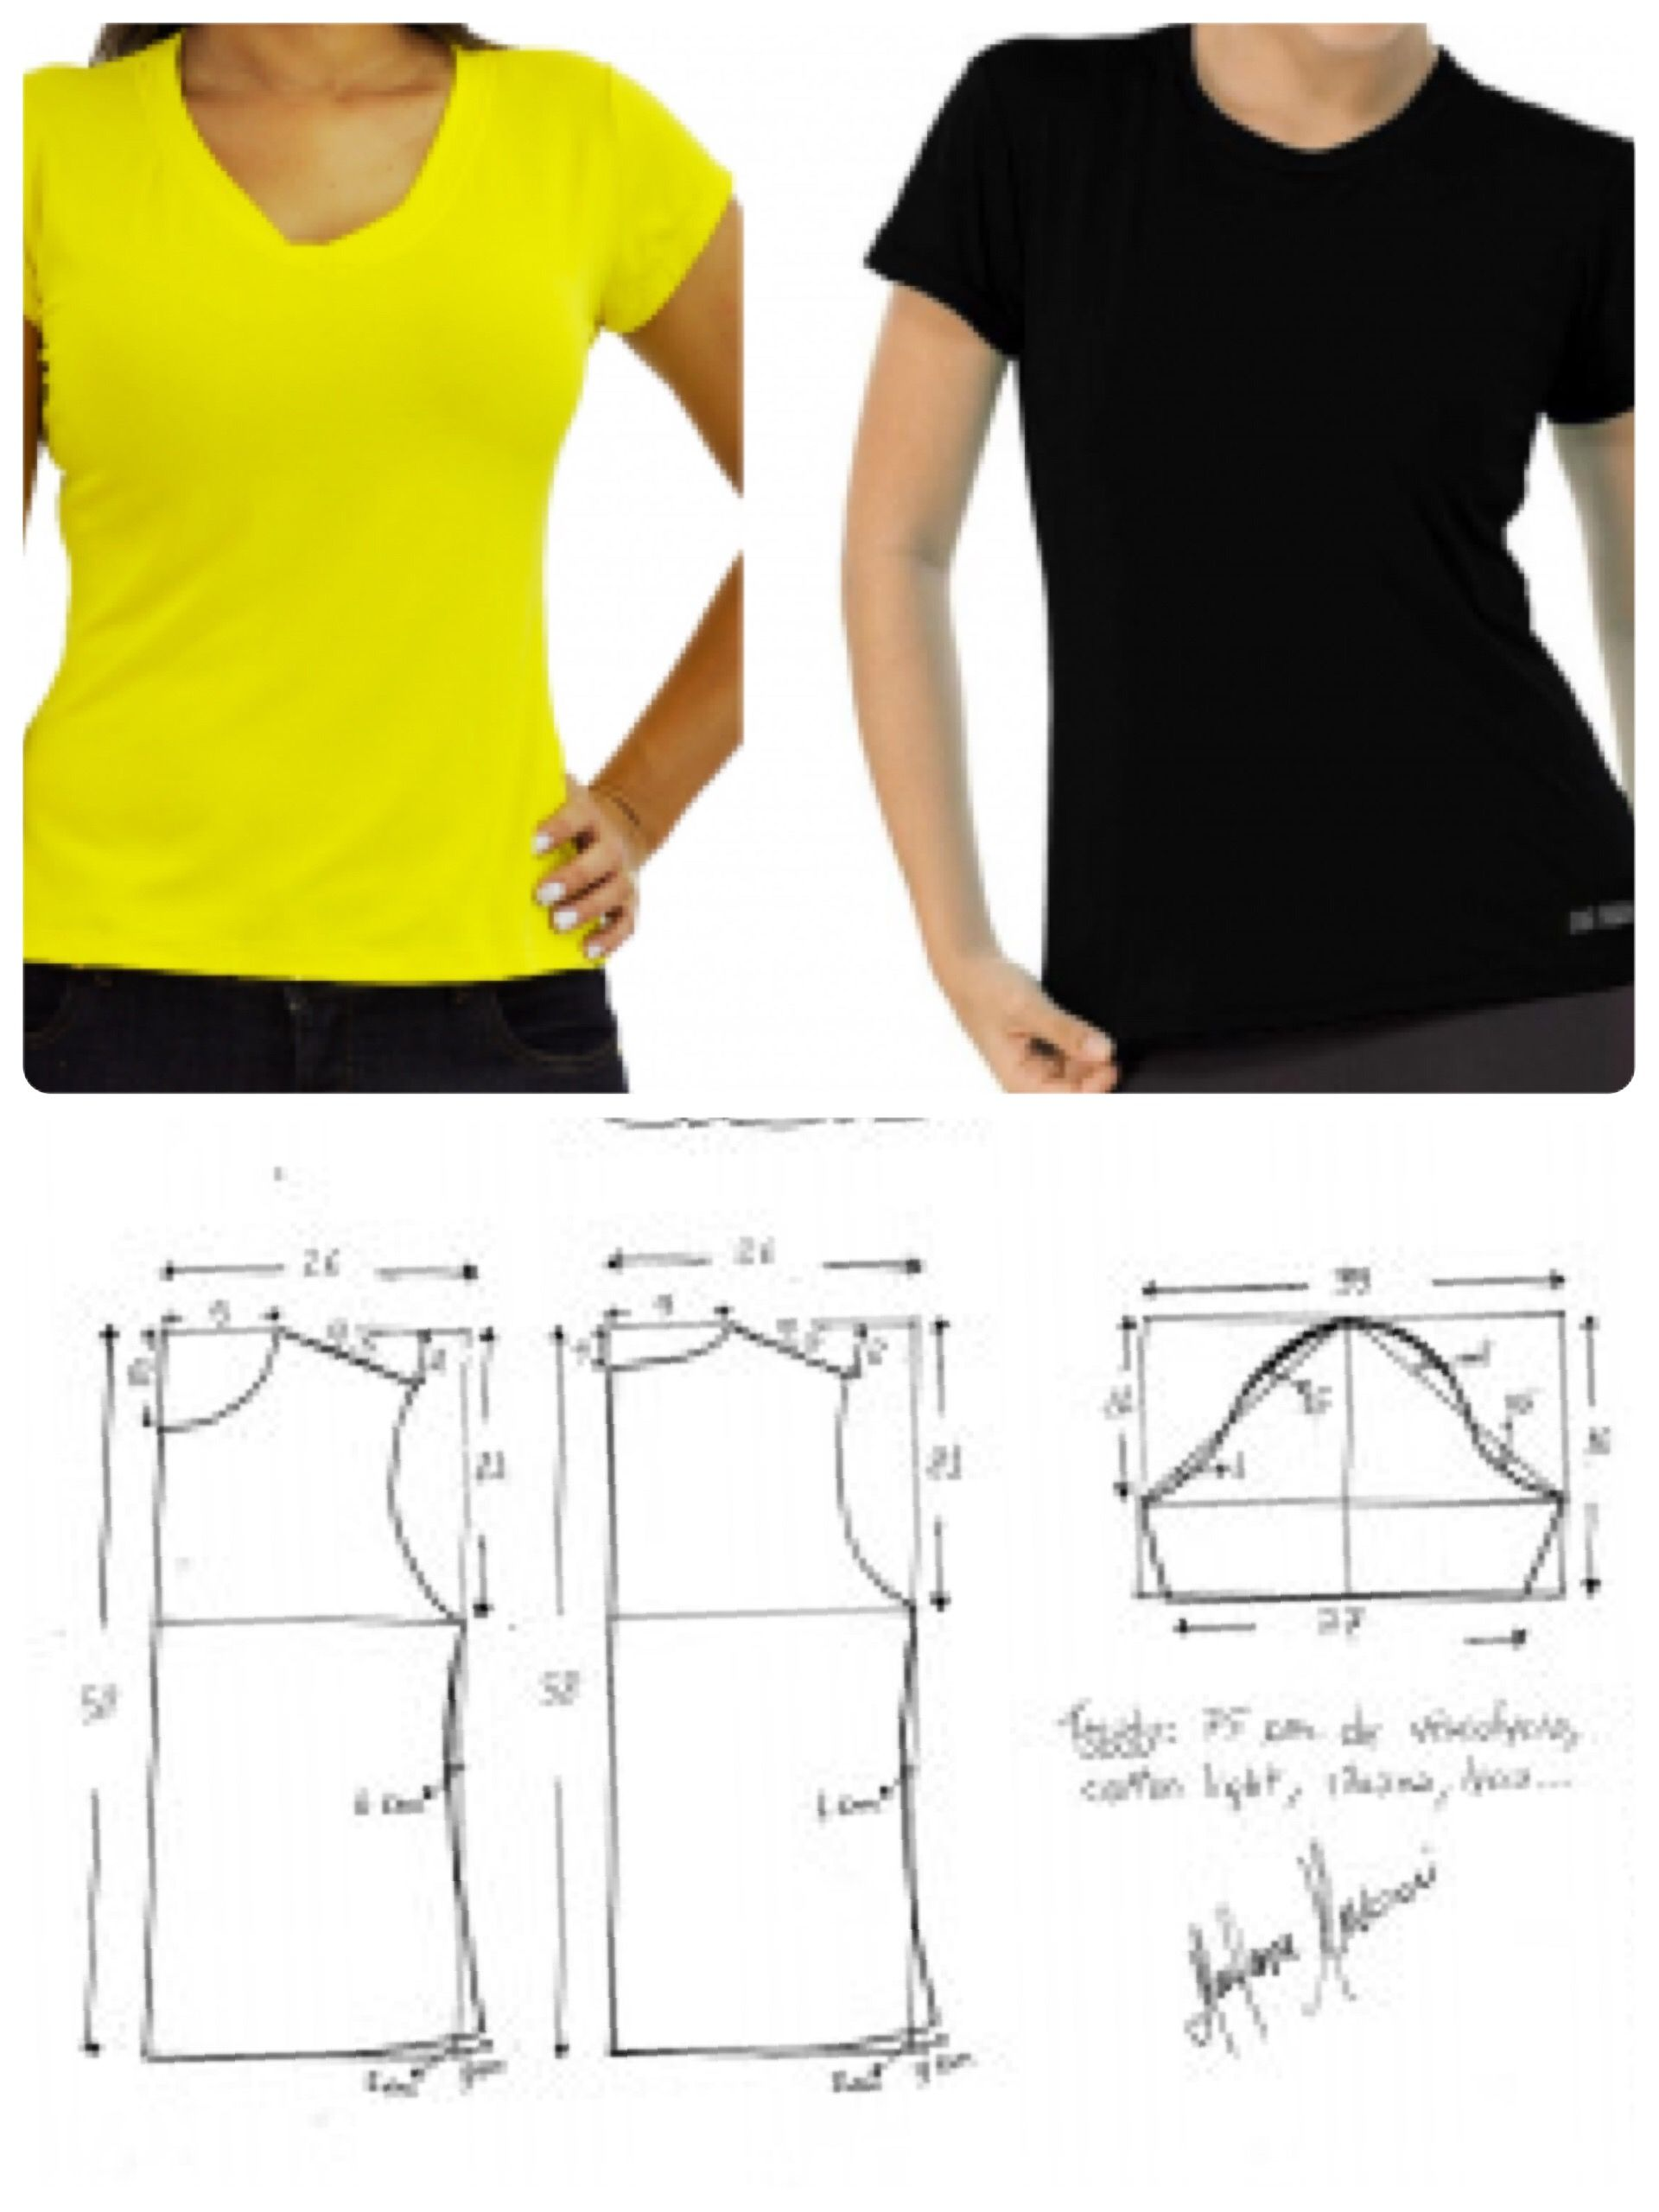 Remeras super simples | Corte y costura... | Pinterest | Sewing ...